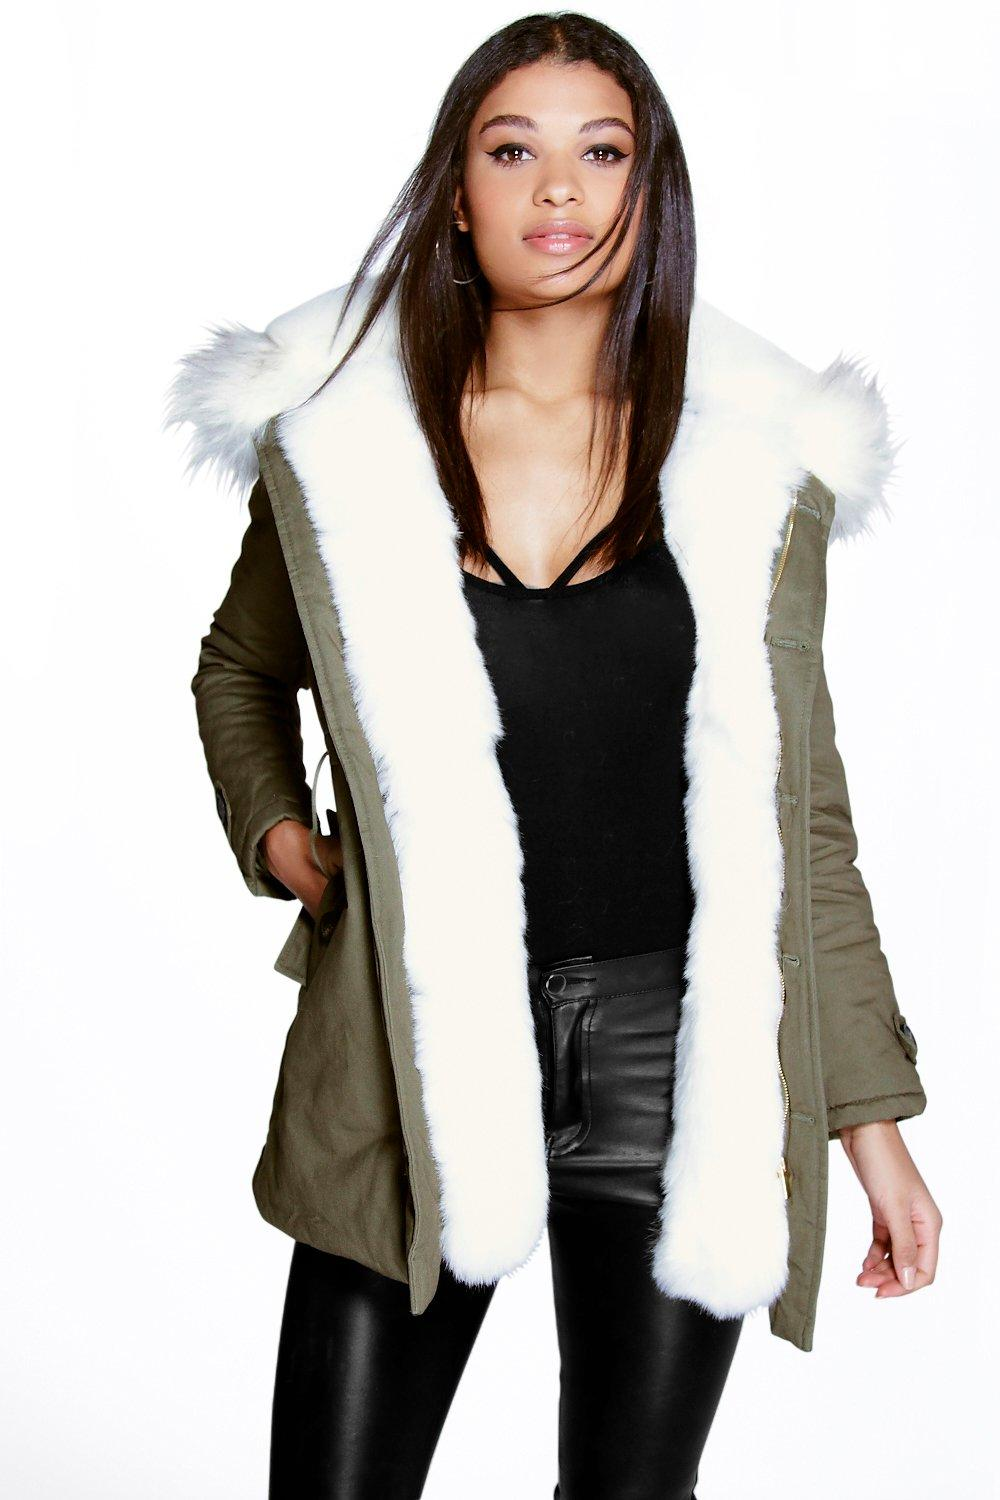 Maria Faux Fur Trim Parka - white